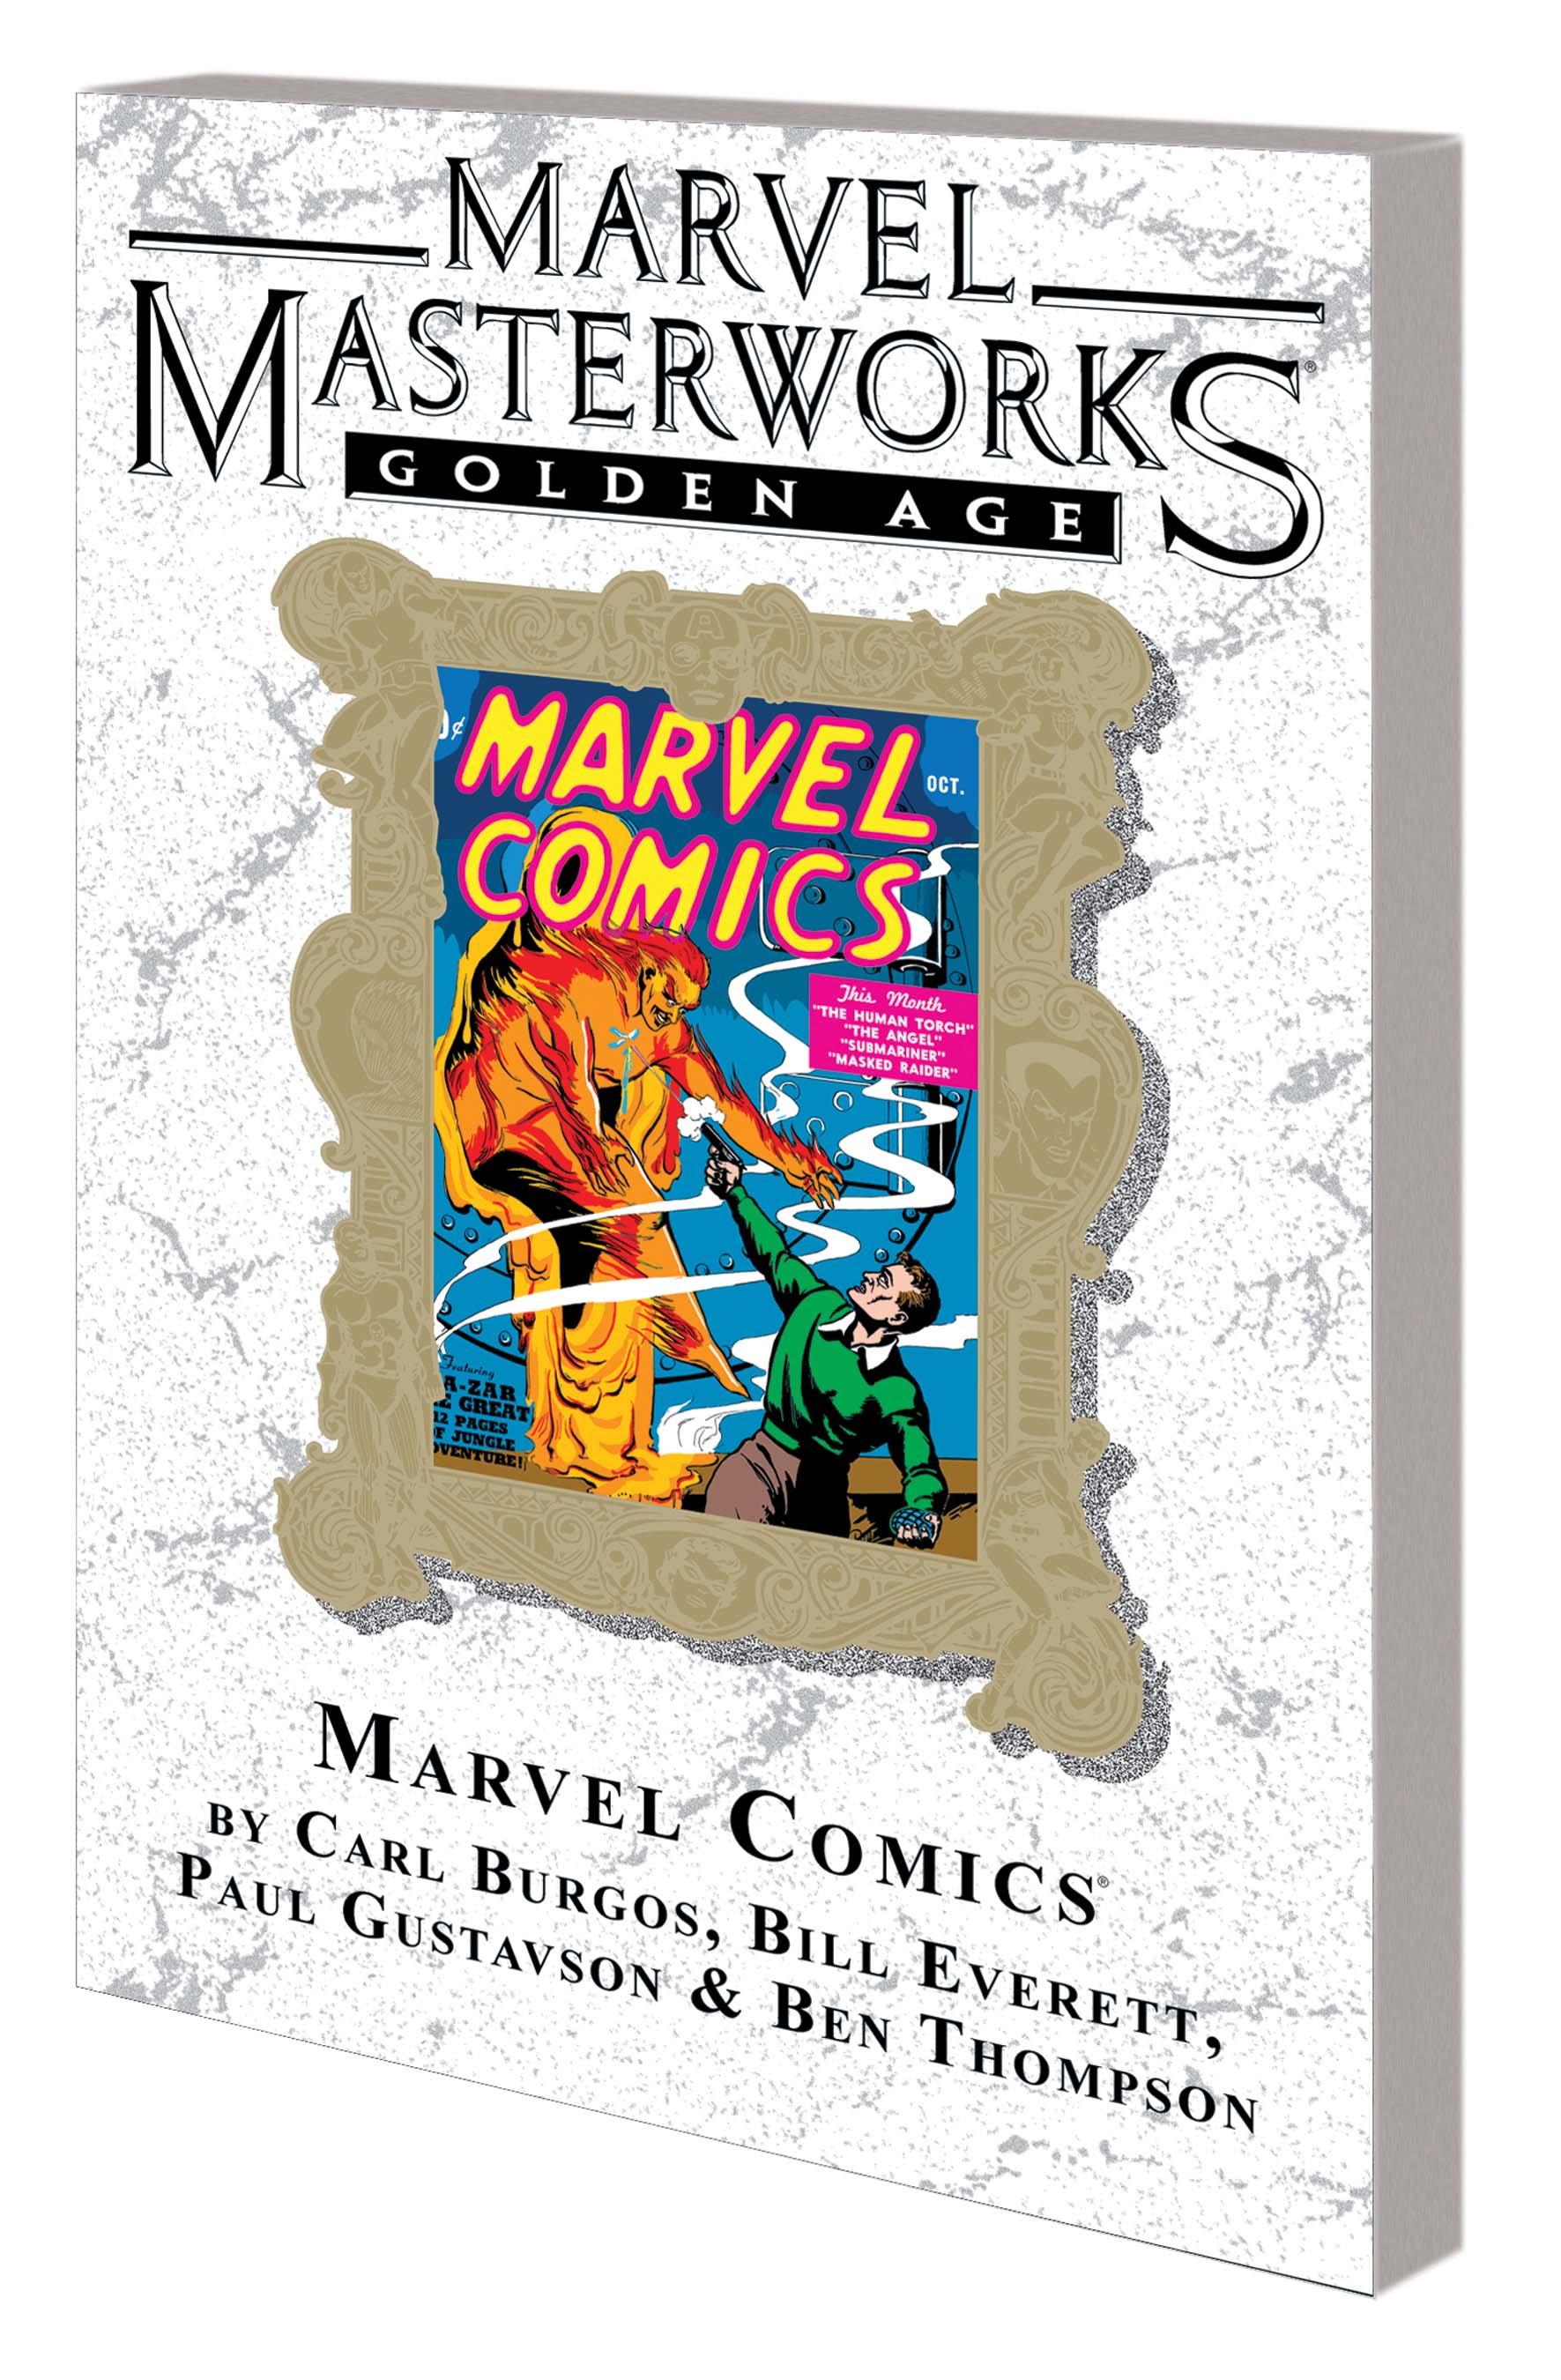 Marvel Masterworks: Golden Age Marvel Comics Vol. 1 Variant (DM Only) (Trade Paperback)